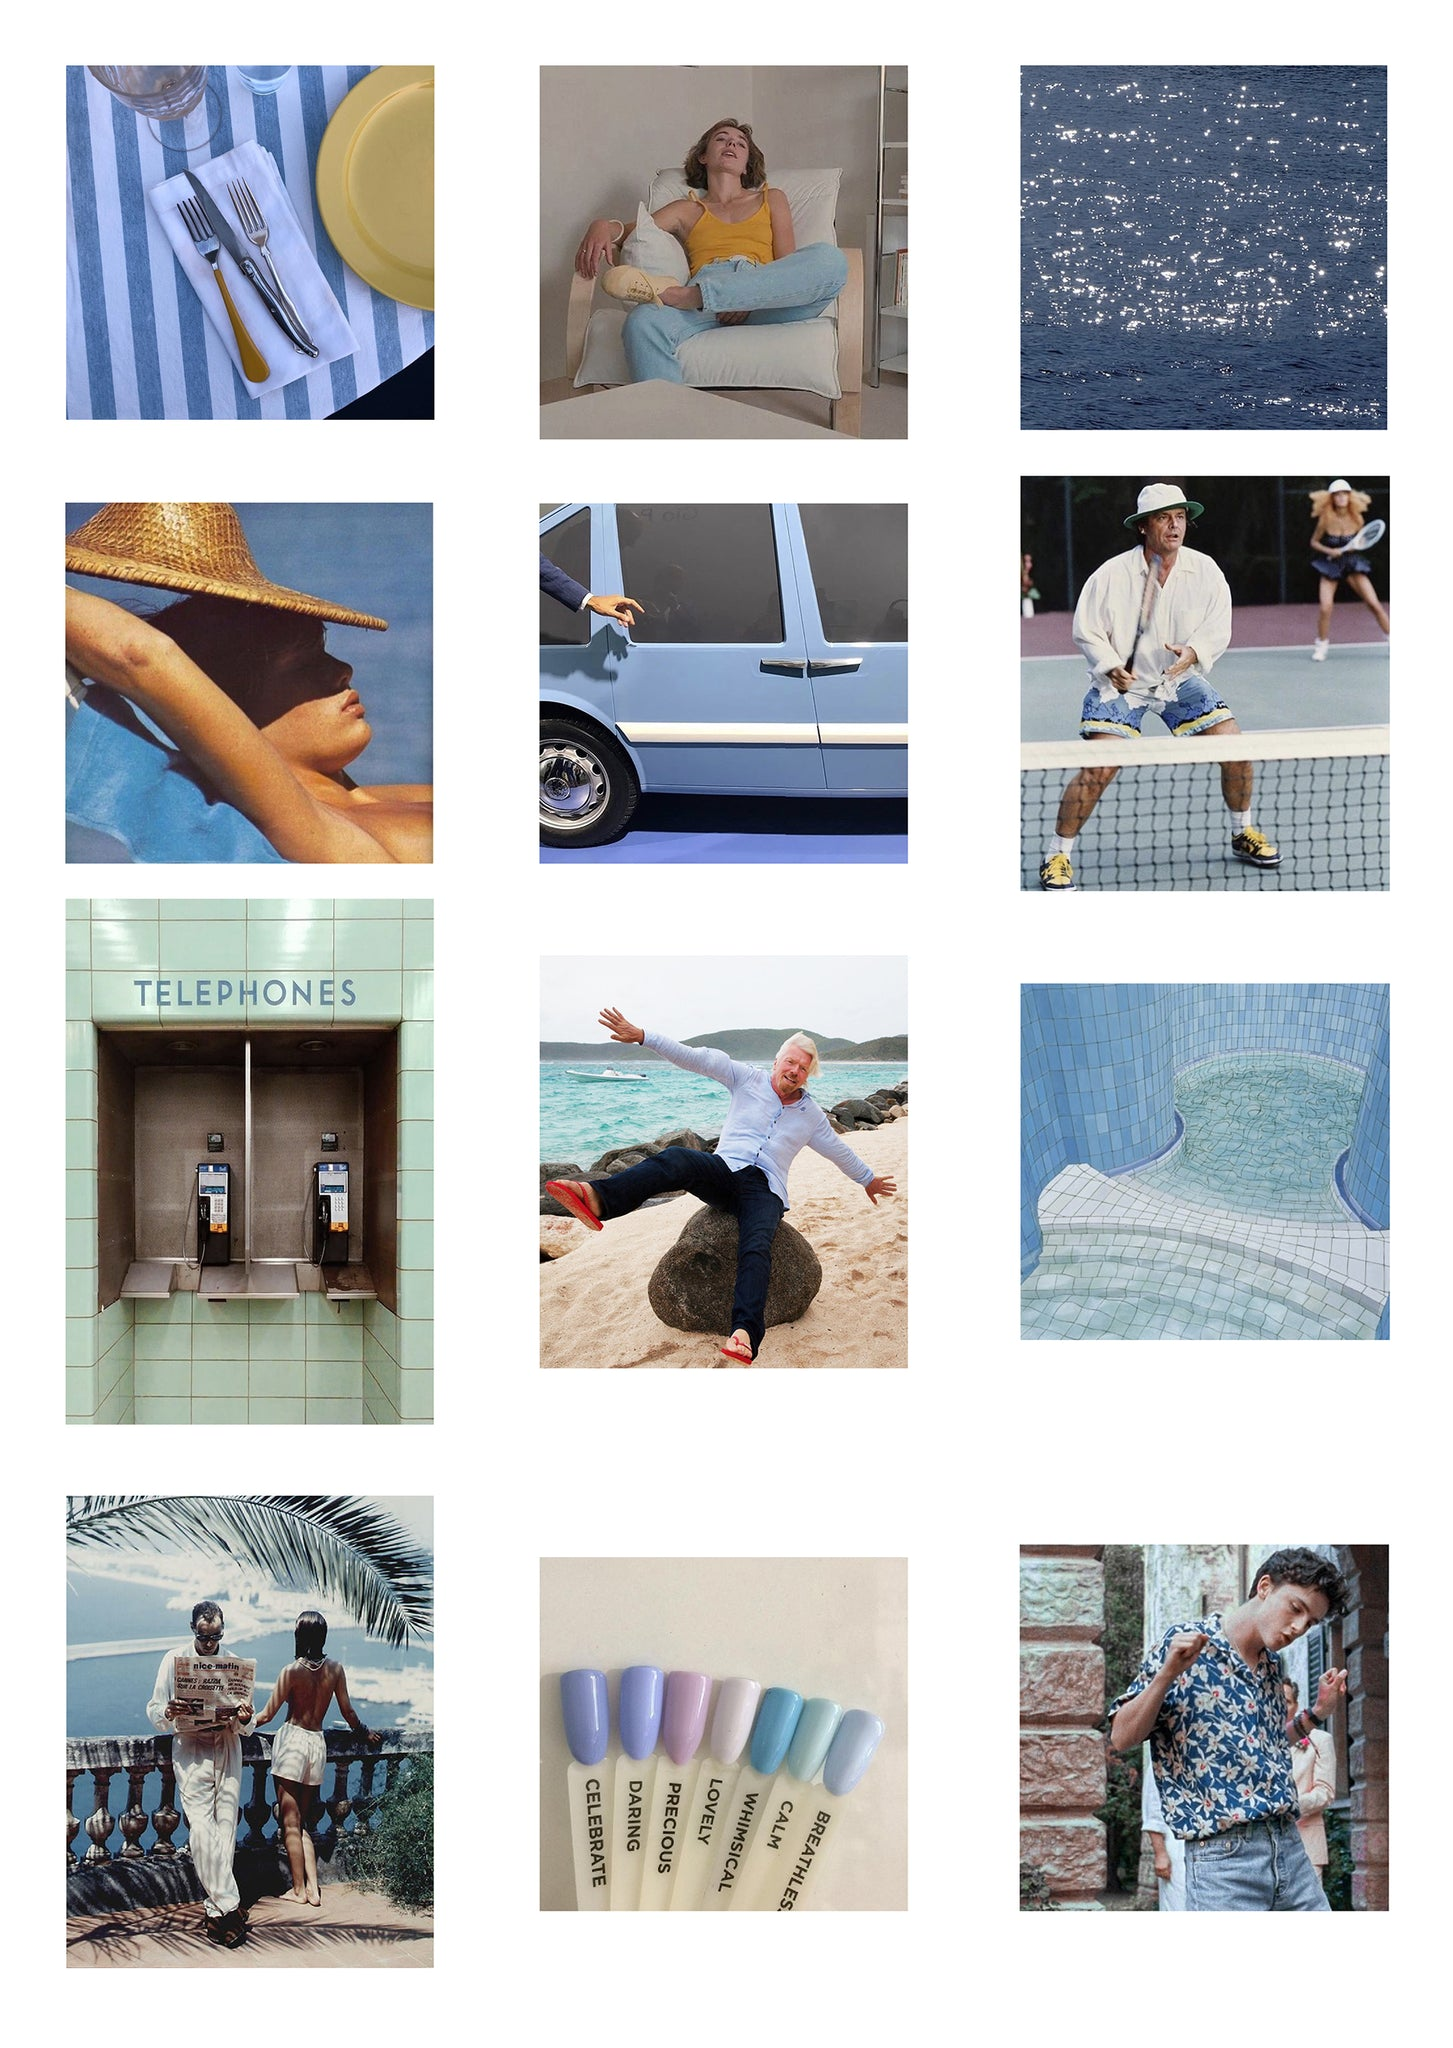 Summer moodboard inspiration featuring blue and turquoise hued images of people, places and things